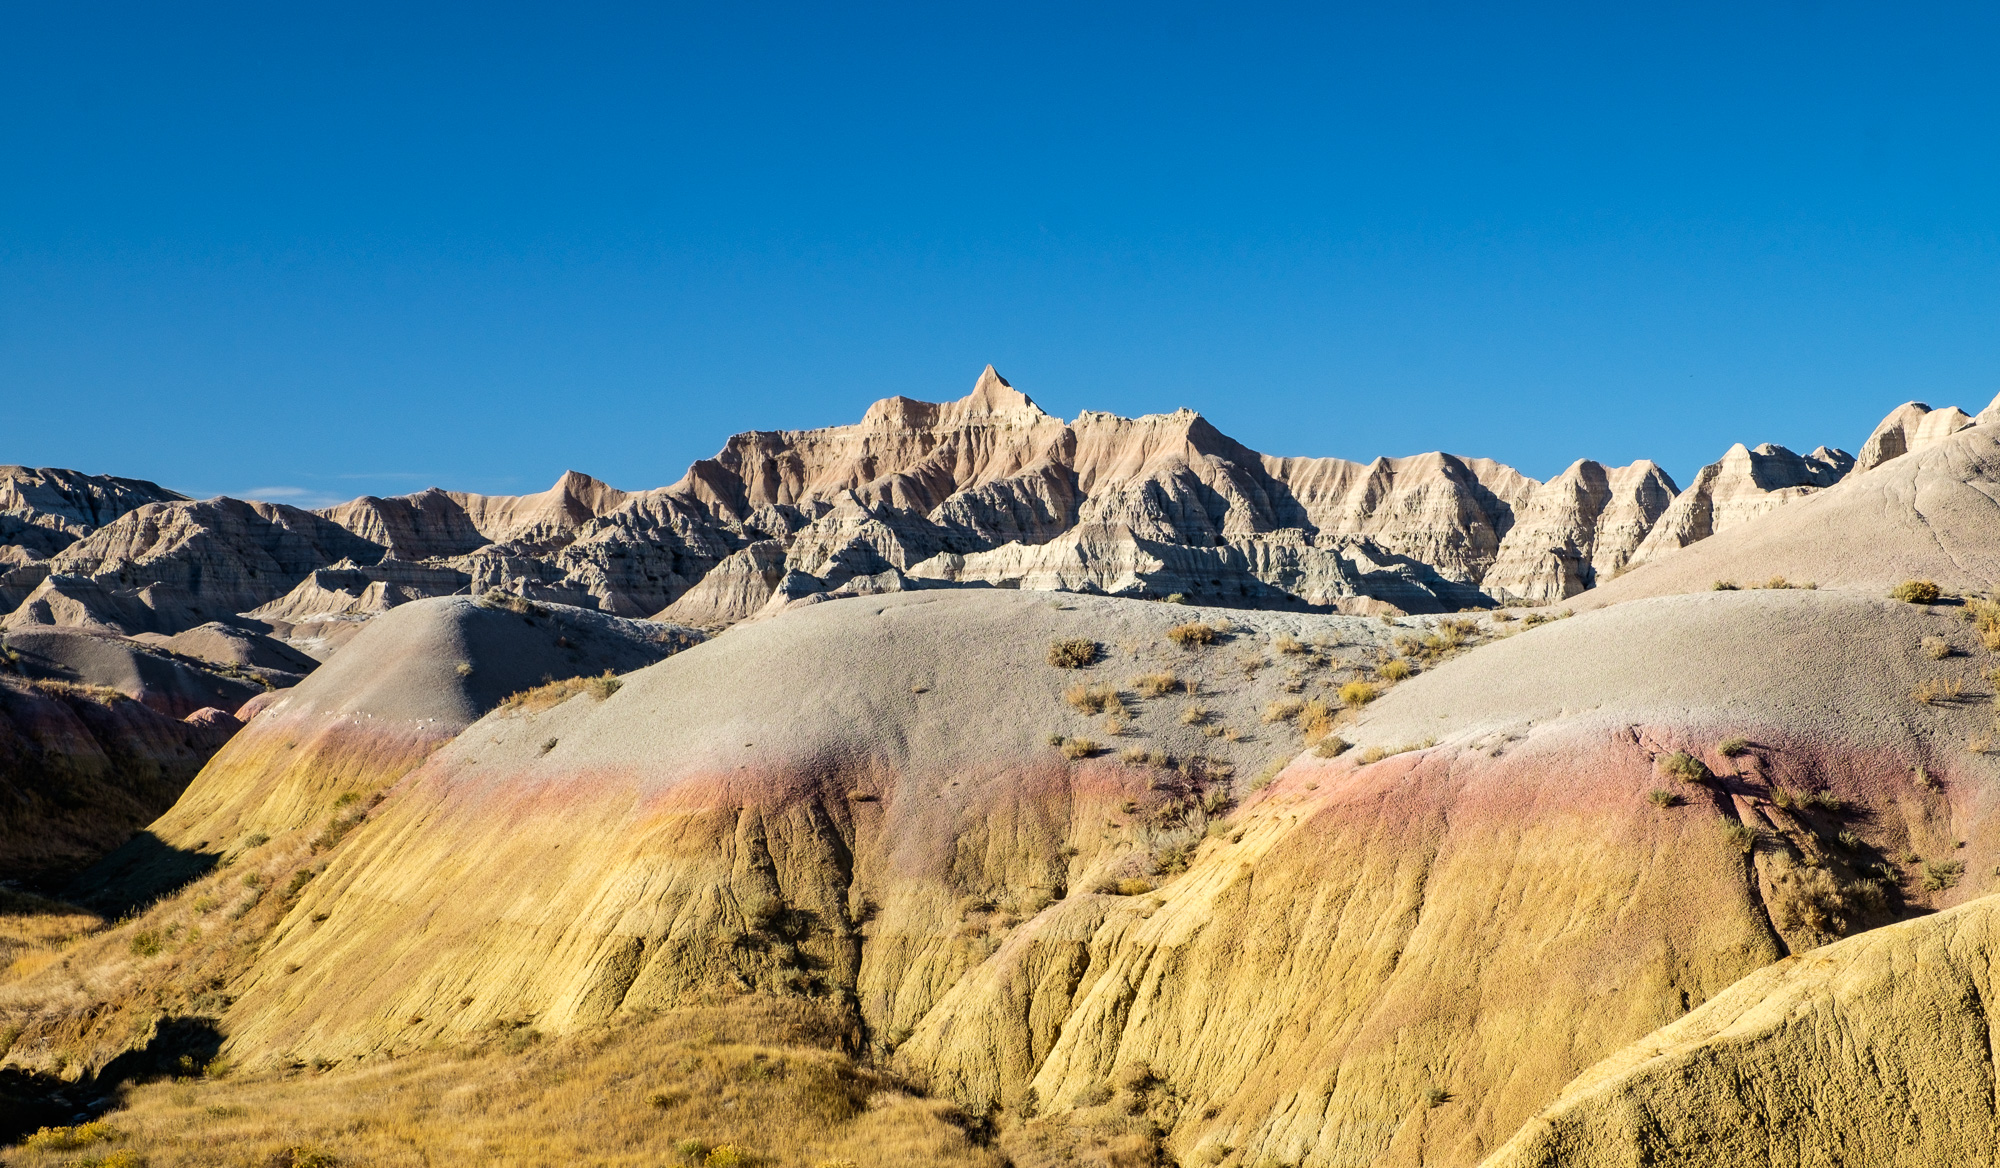 Badlands National Park - 006.jpg